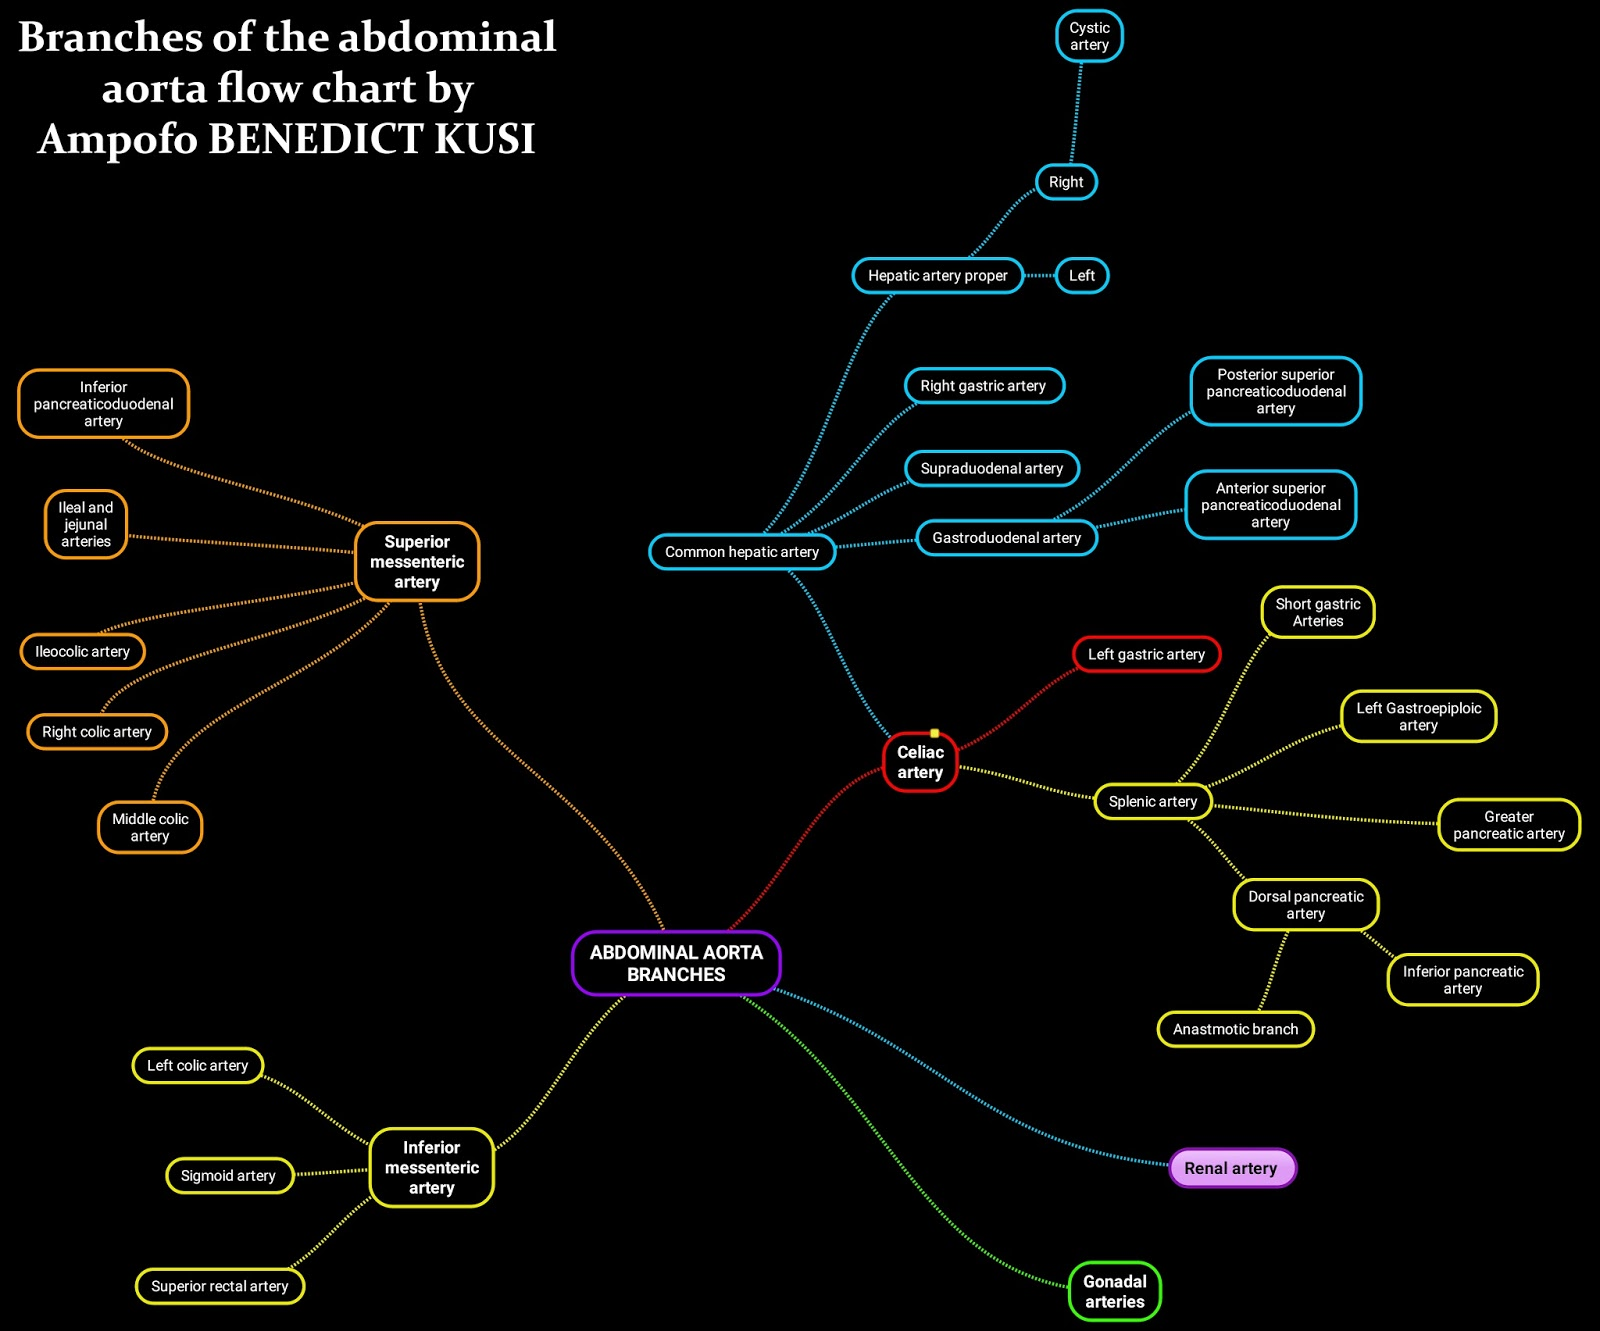 Medicowesome: Submissions: Branches of the abdominal aorta flow chart